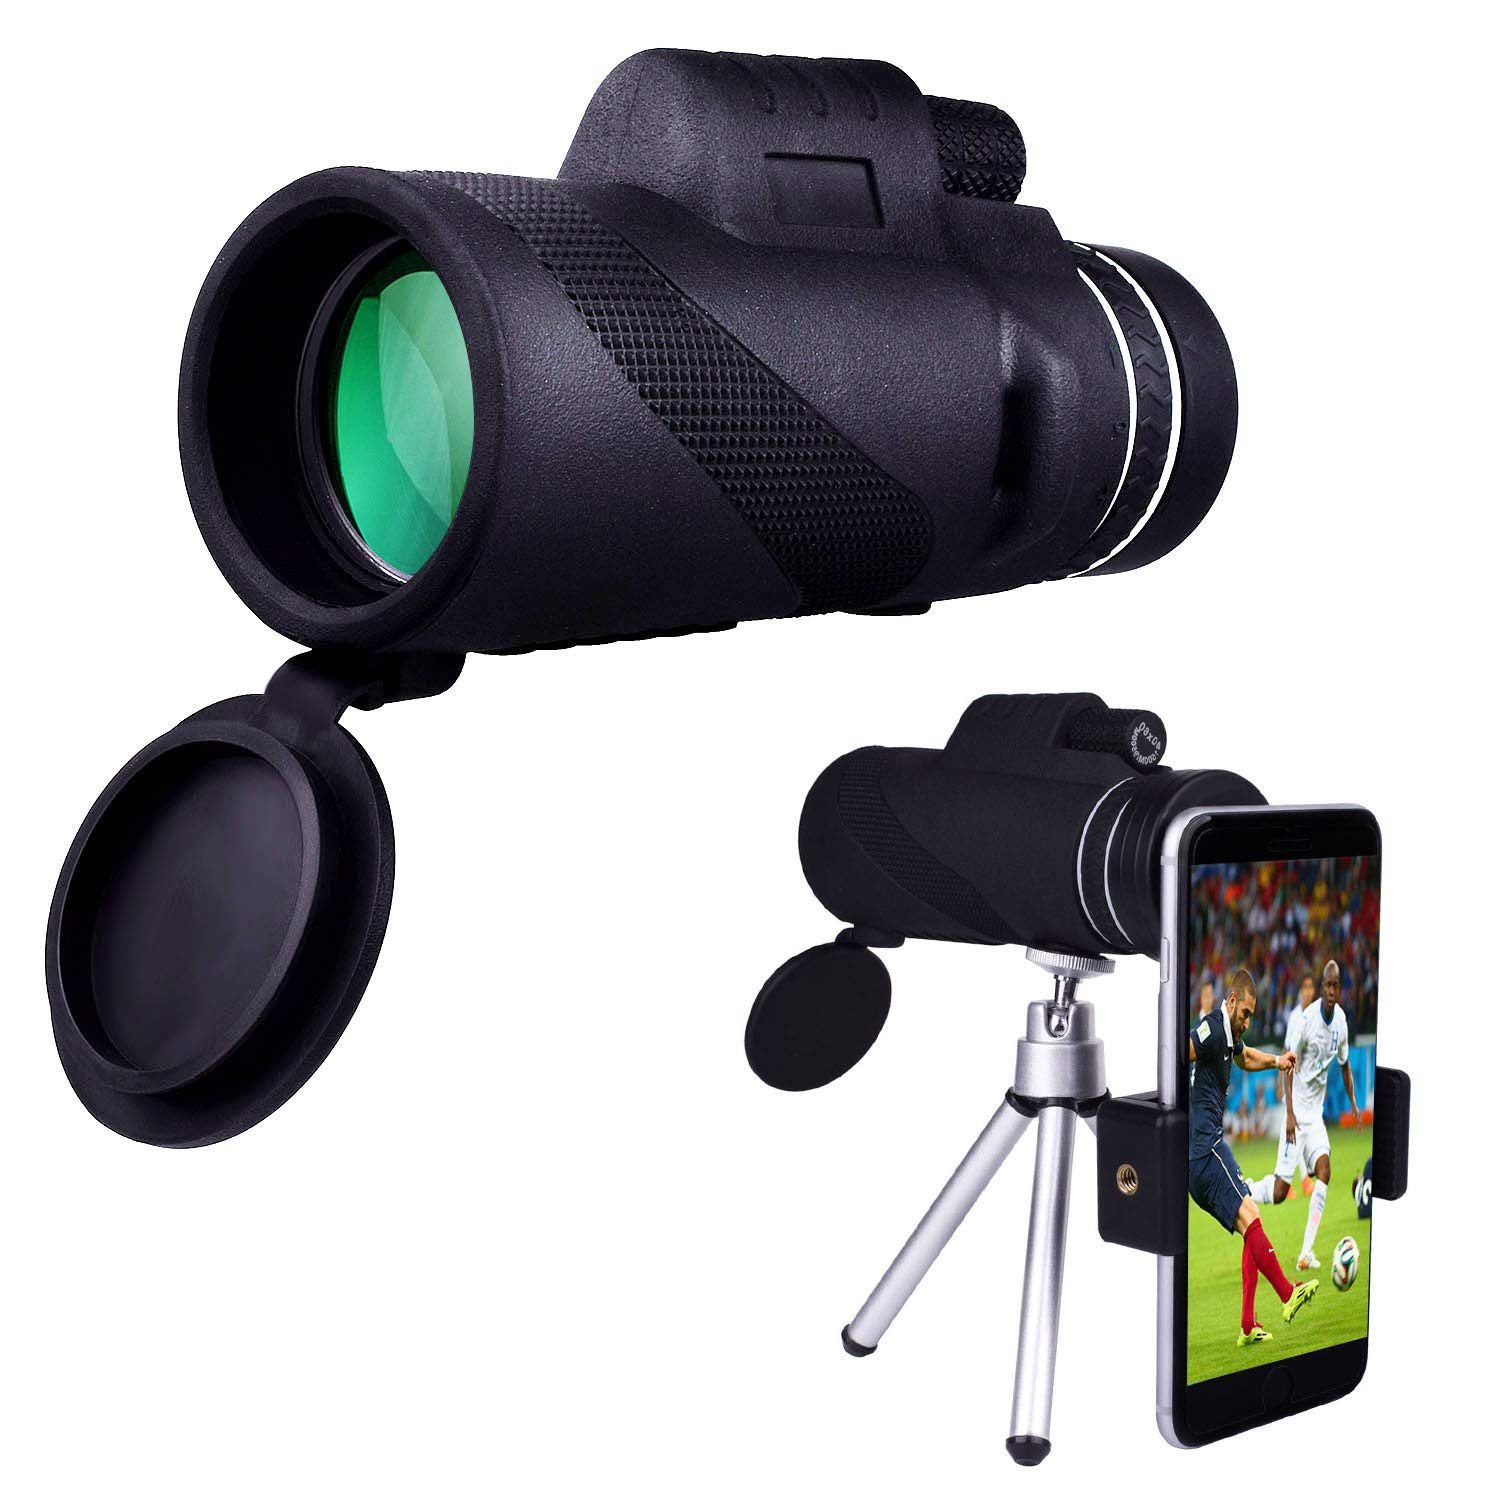 Monocular Telescope, Racol 40x60 High Power Low Night Vision Waterproof Compact Monocular High Power Prism Scope With Quick Smartphone Mount Adapter and Tripod - Dual Focus Waterproof Spotting Scopes